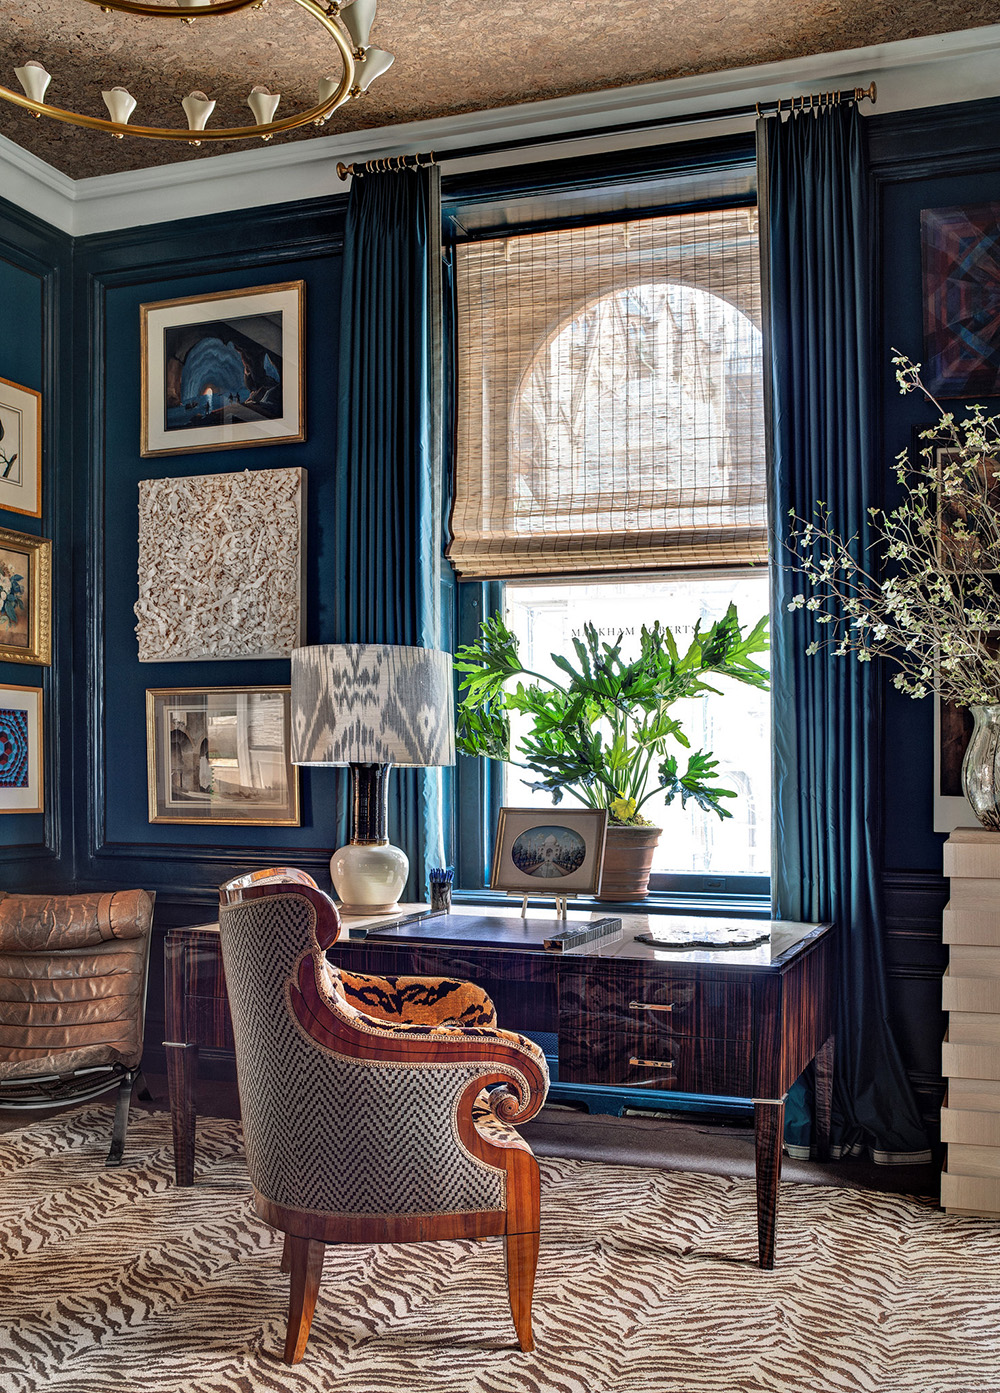 Markham Roberts, Inc., Kips Bay Decorator Show House